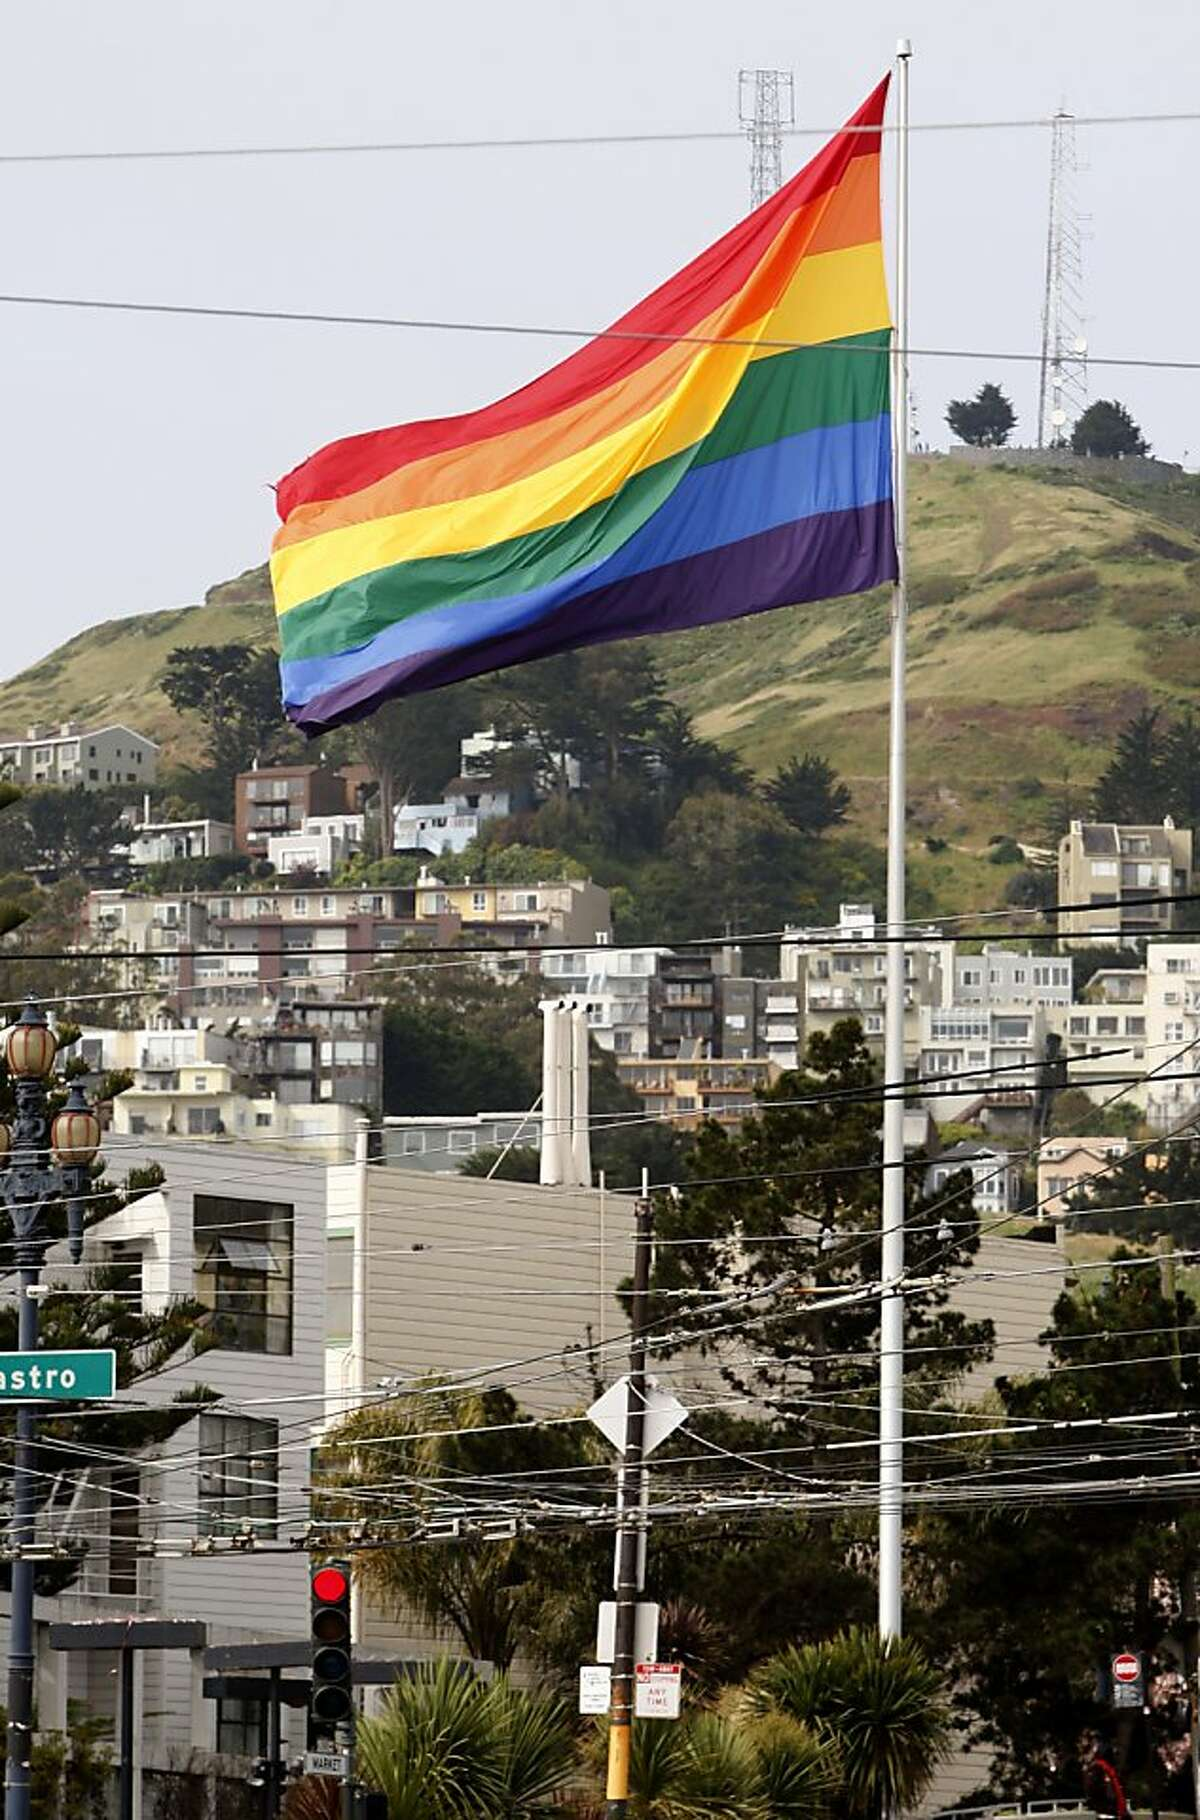 The gay pride rainbow flag flies at Market and Castro streets in San Francisco, Calif. on Saturday, April 23, 2011. Activist Michael Petrelis is urging community leaders to fly the stars and stripes on Harvey Milk Day but is meeting resistance to his idea.